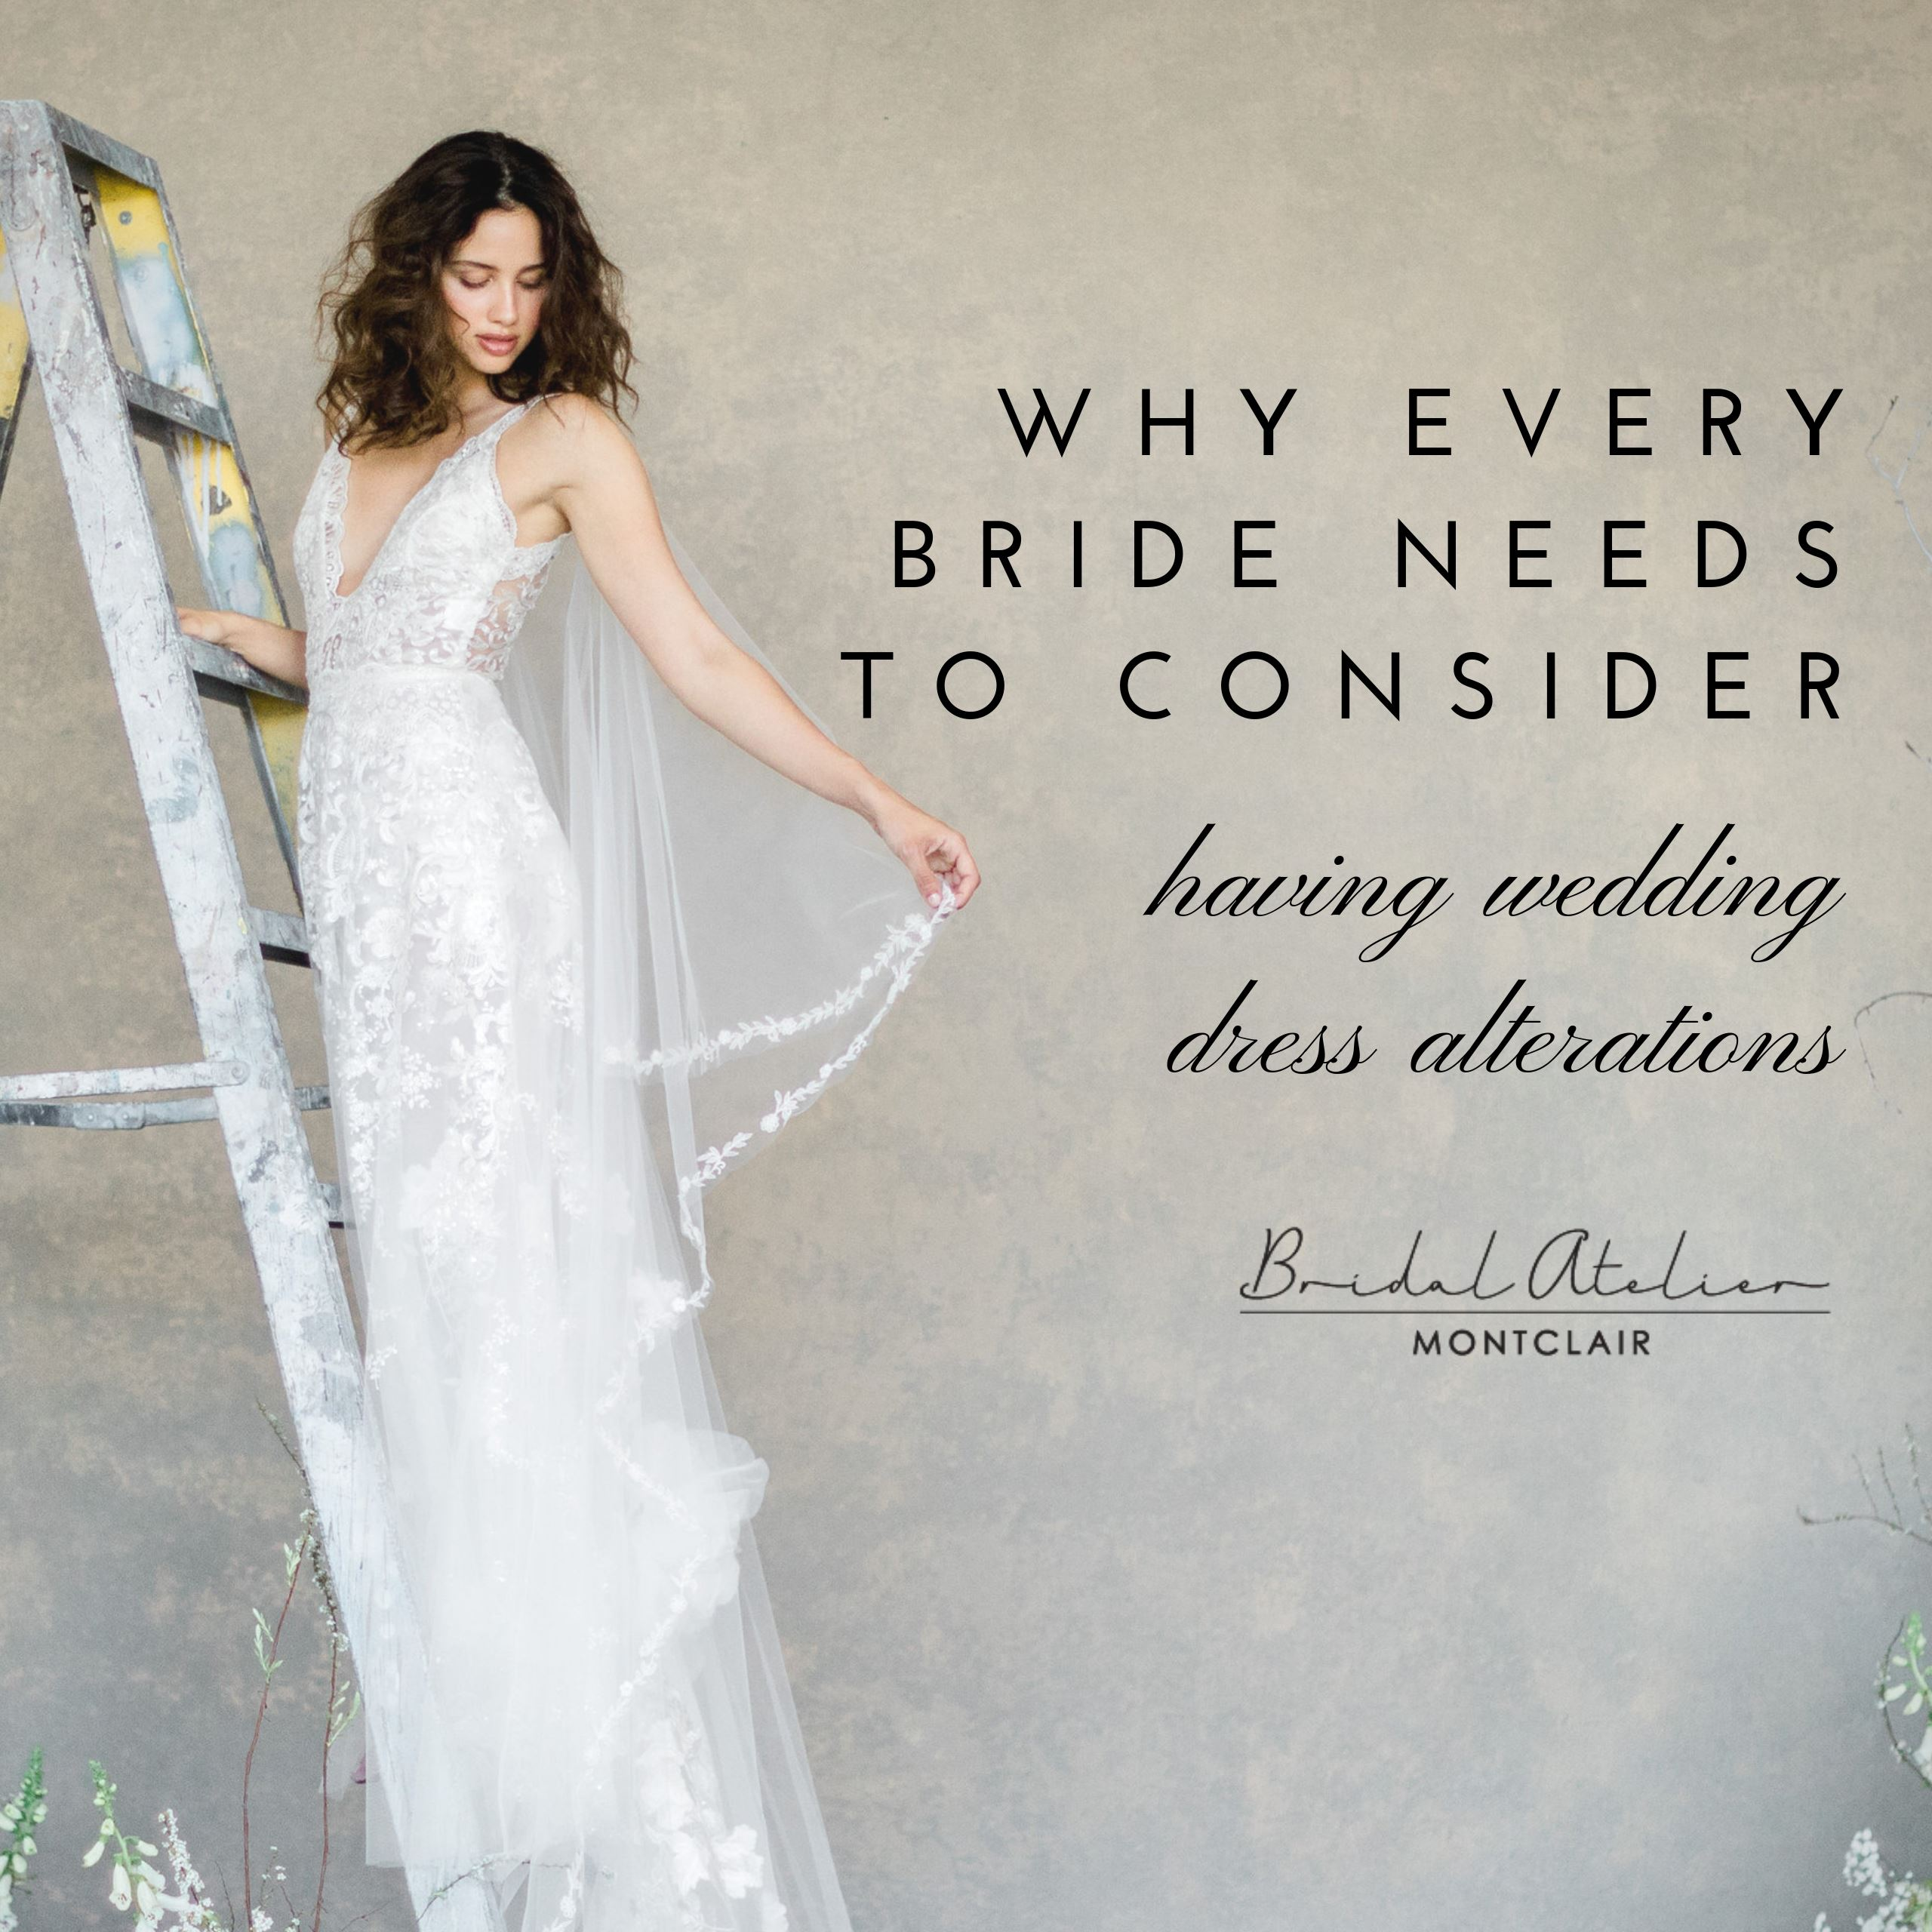 Why Every Bride Needs To Consider Having Wedding Dress Alterations